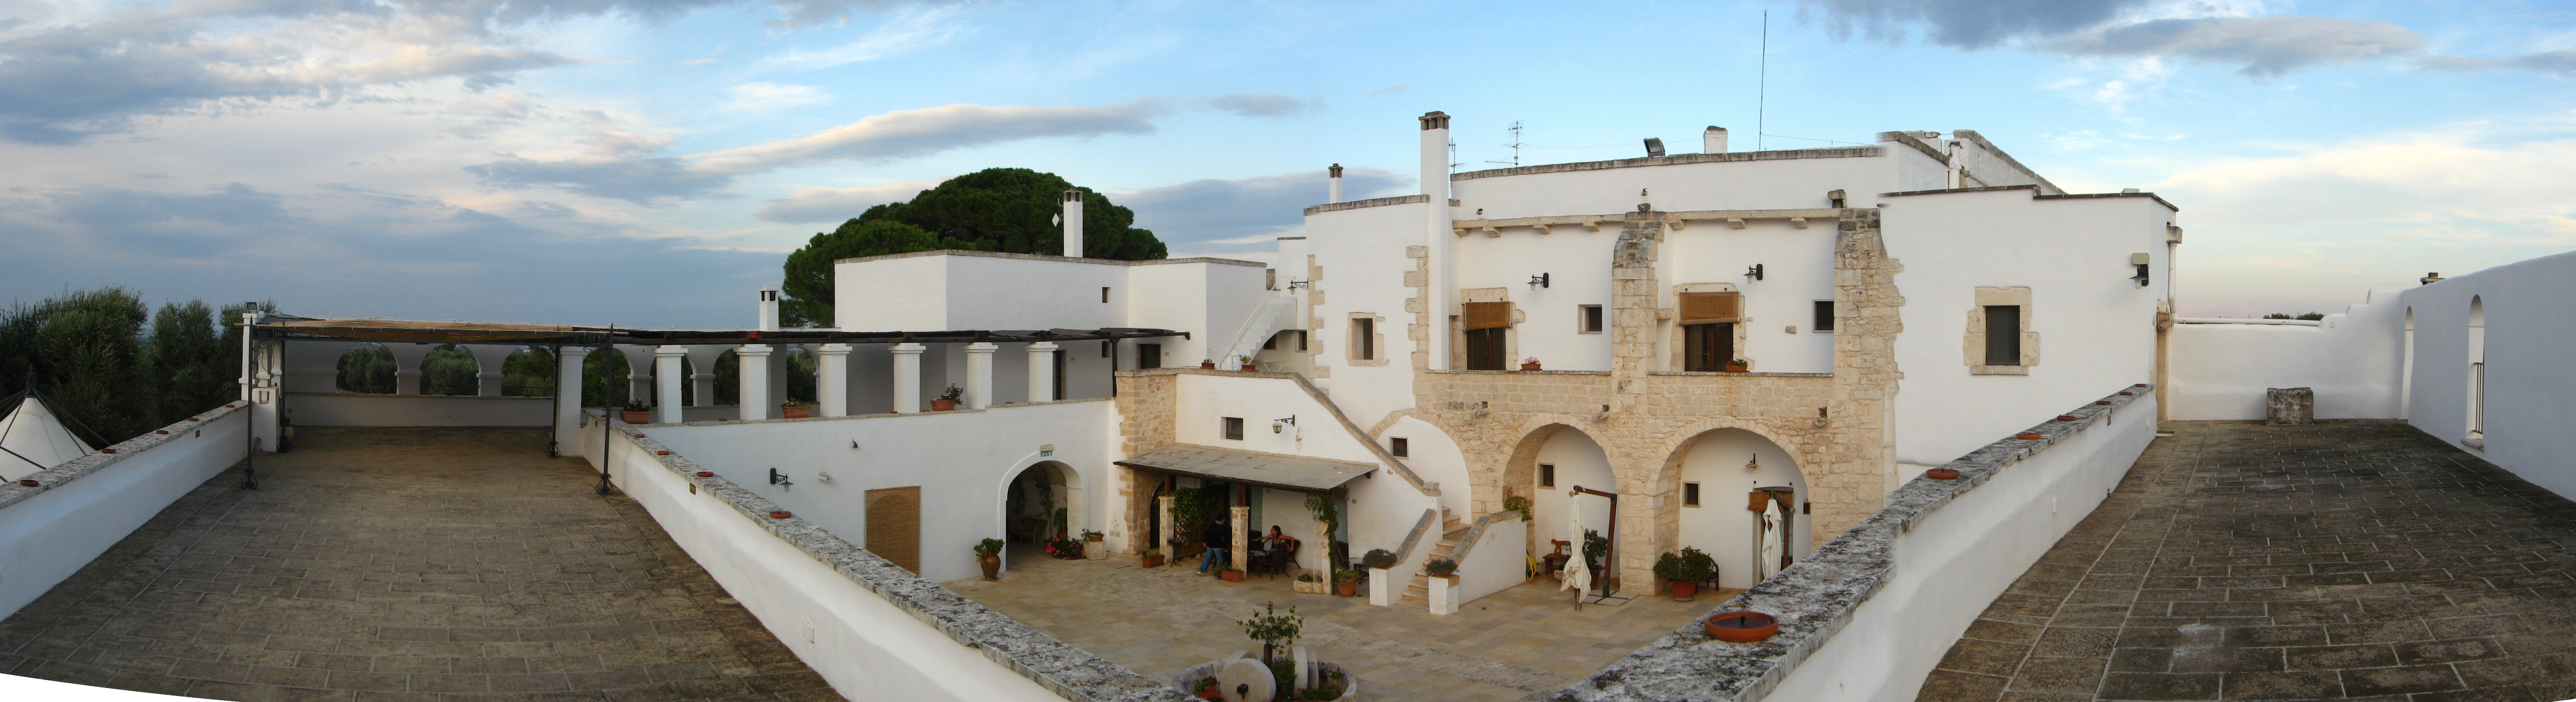 Masseria Casamassima